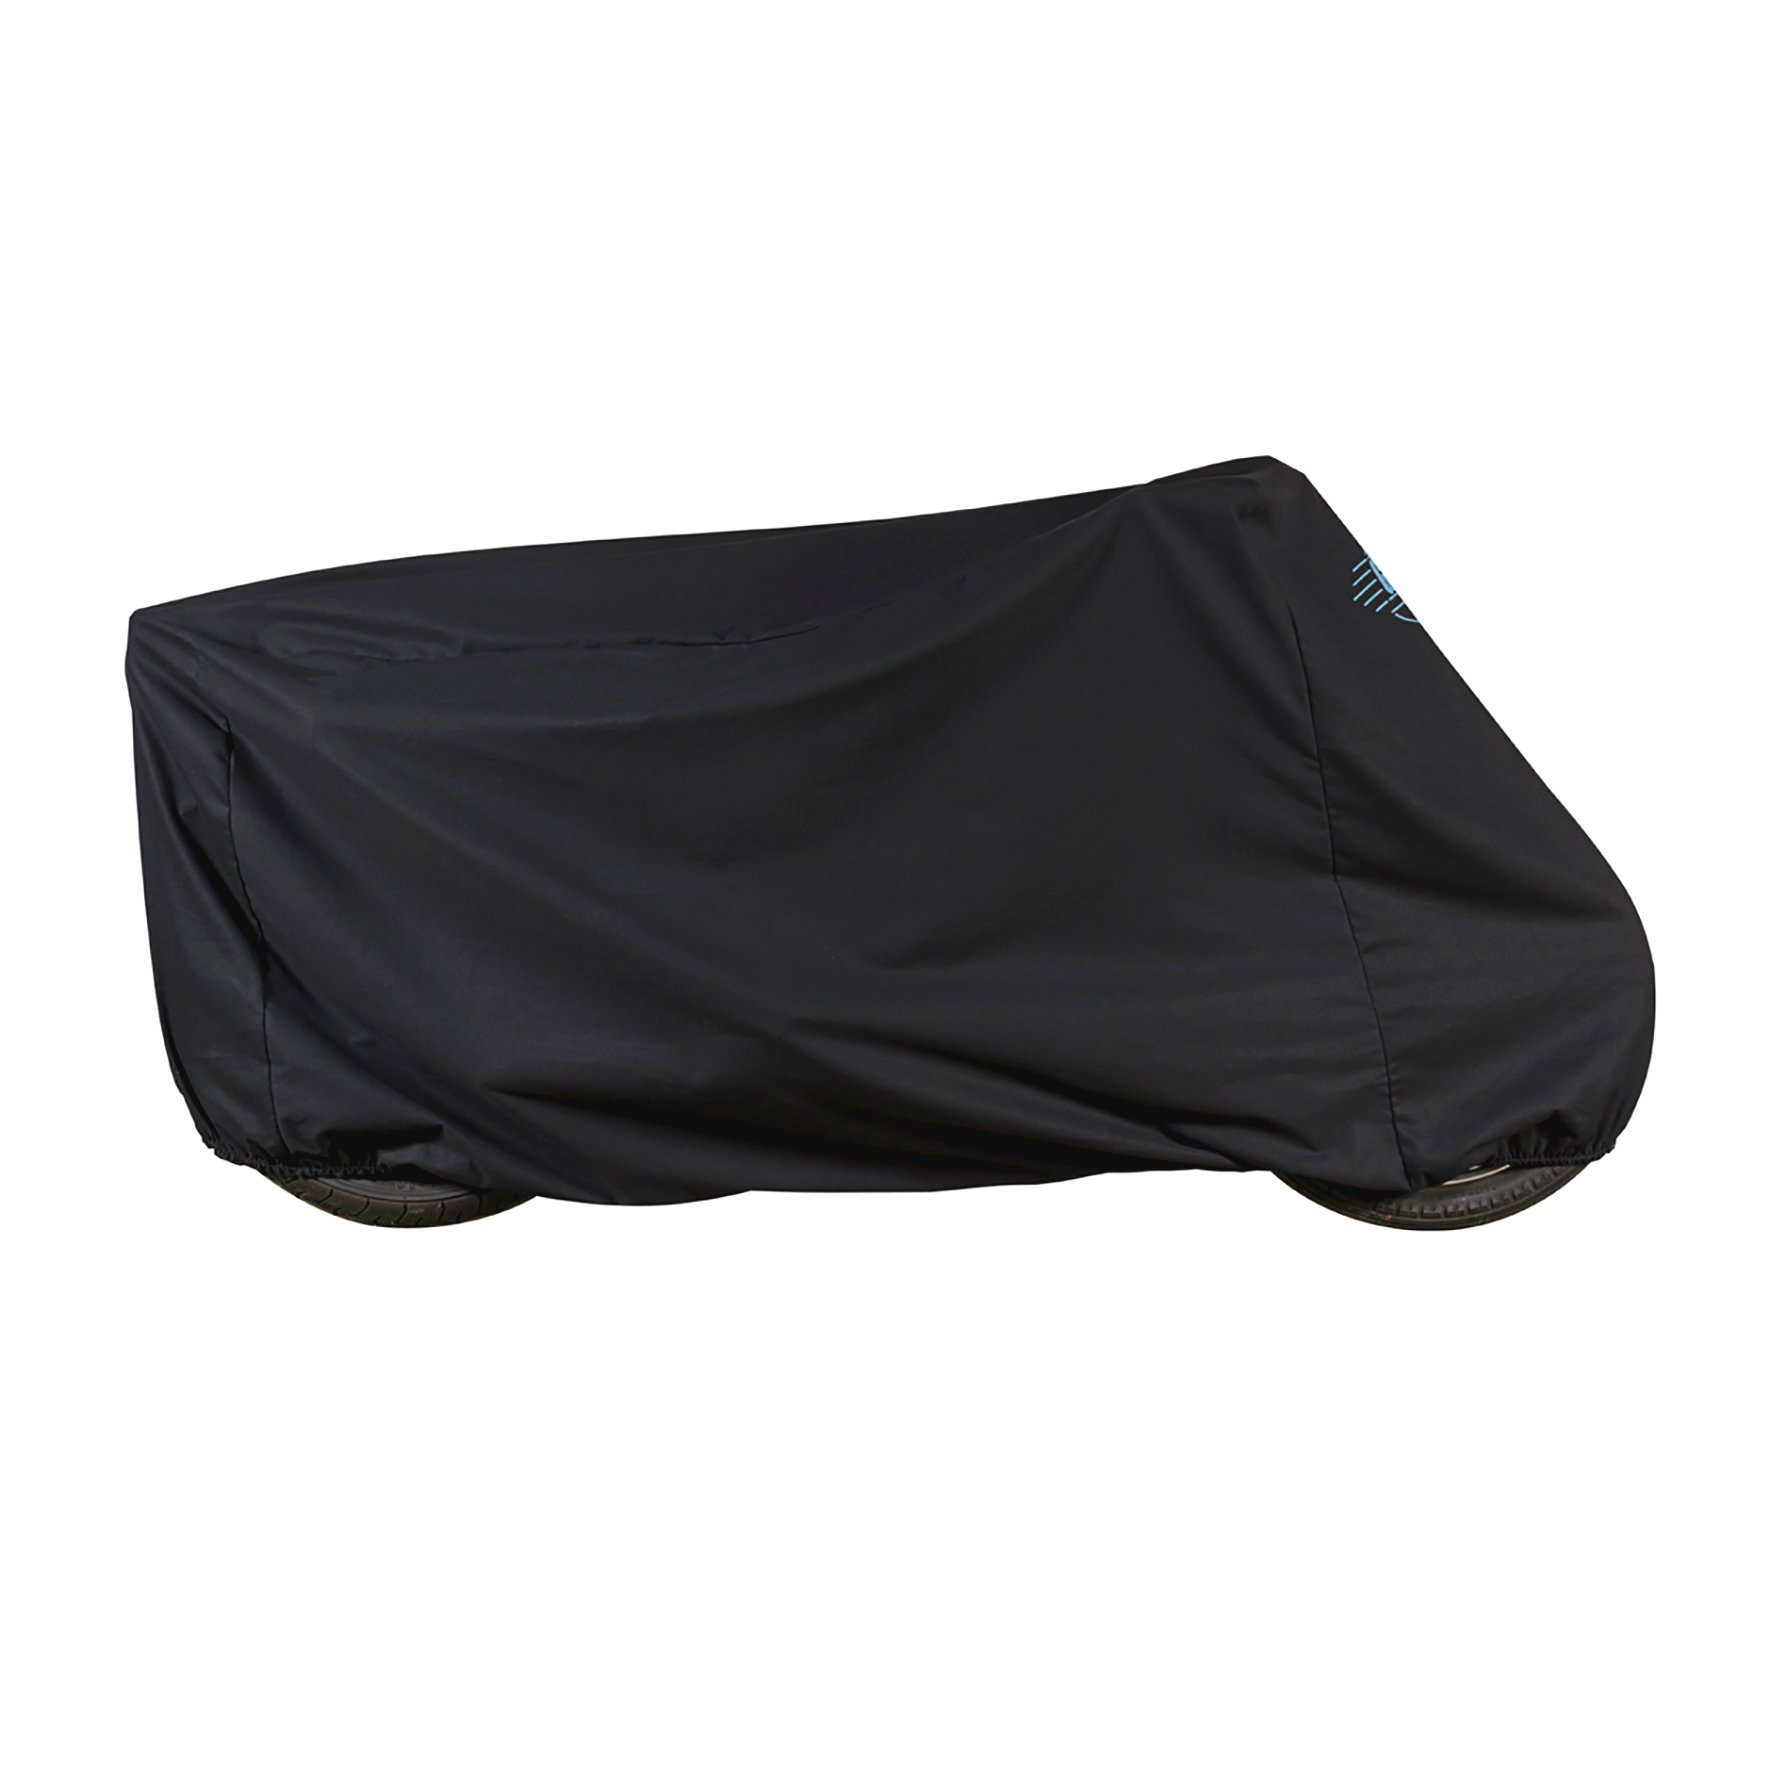 Guardian By Dowco - Indoor/Garage Breathable Motorcycle Dust Cover - Lifetime Limited Warranty - Napped Protective Interior - Black - Sportbike [ 51017-00 ]